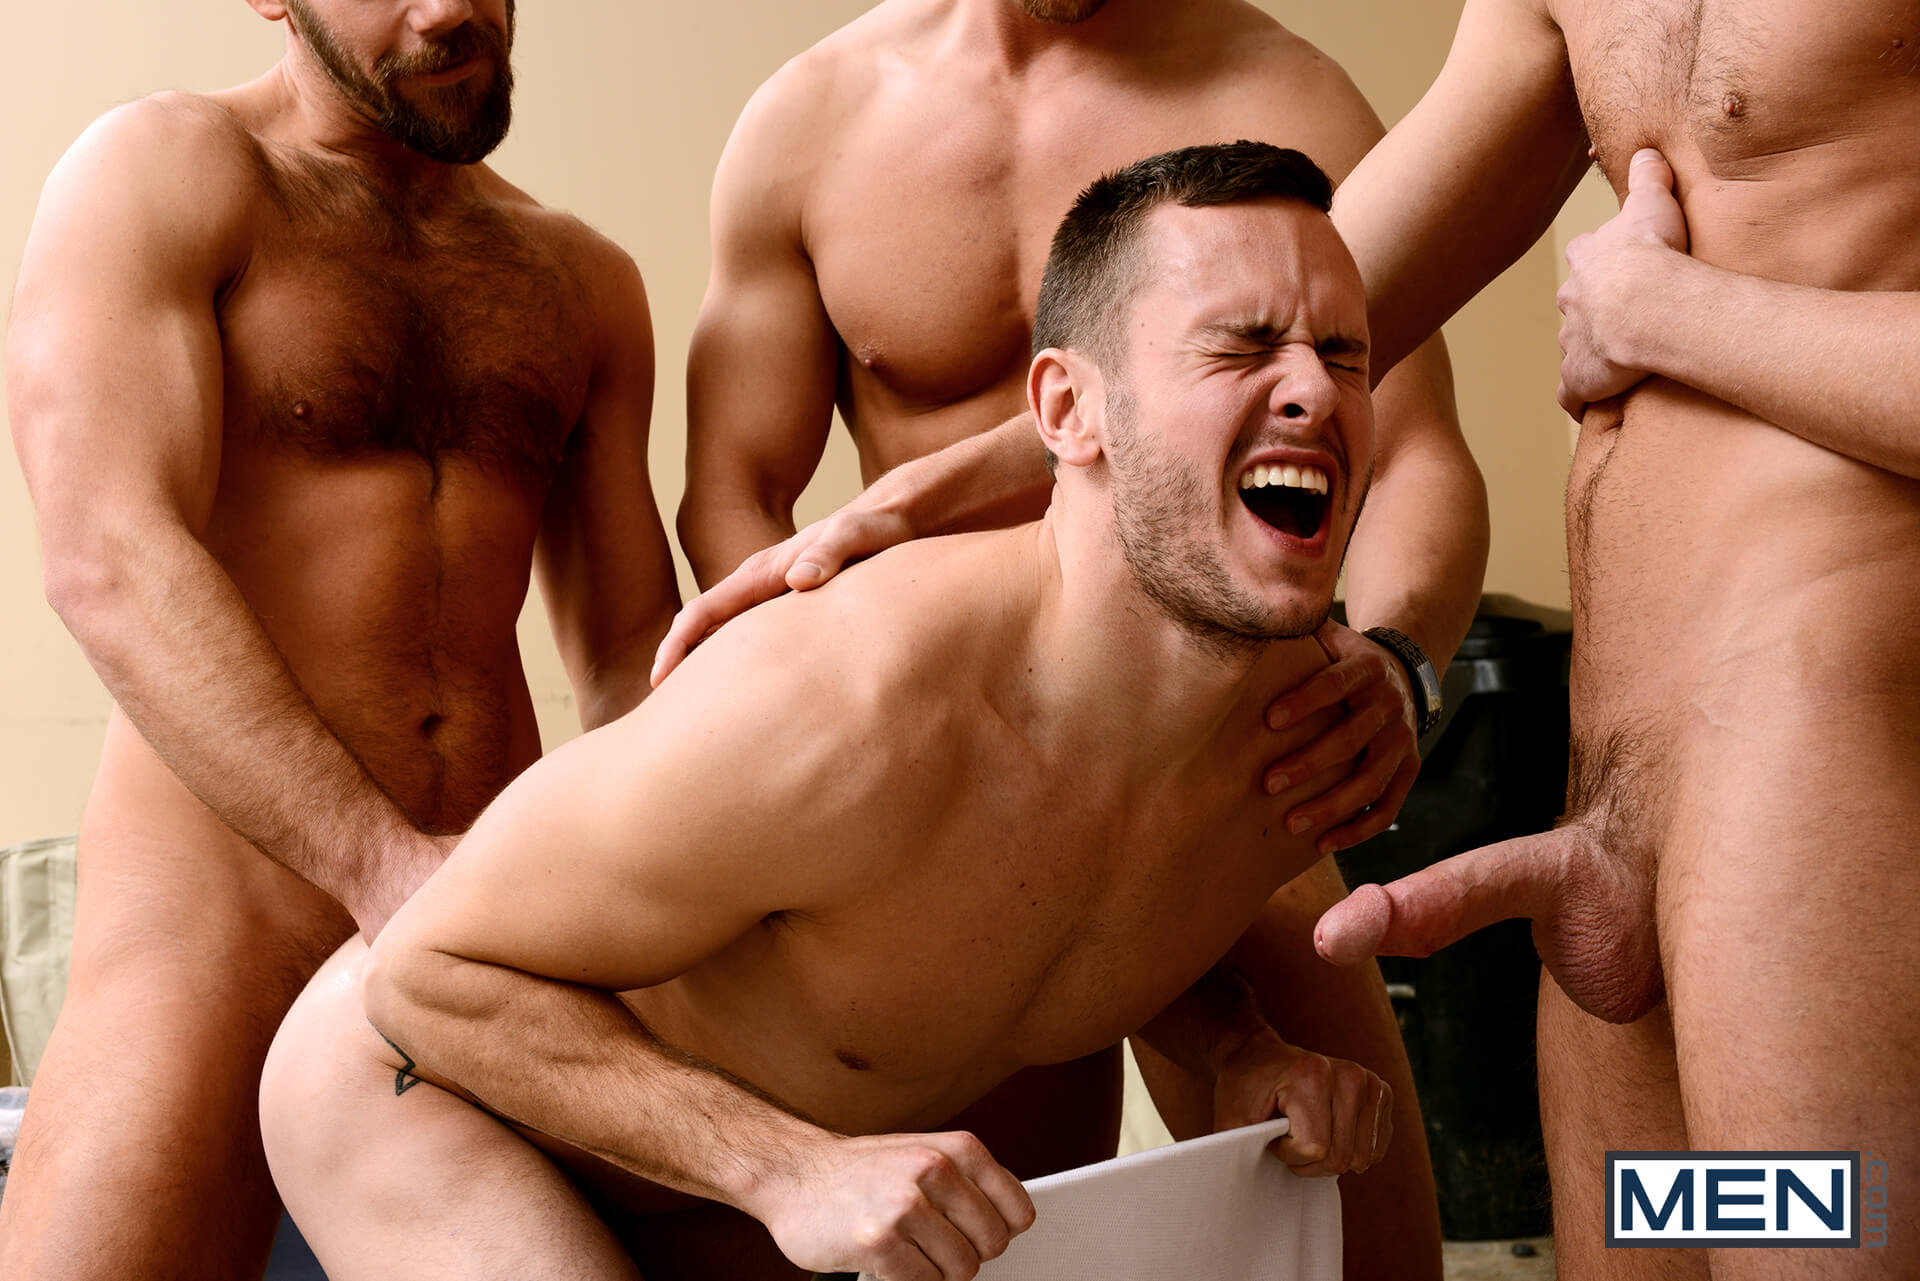 men jizz orgy my brother in law part 8 brenner bolton cameron foster mike tanner morgan shades gay porn blog image 8